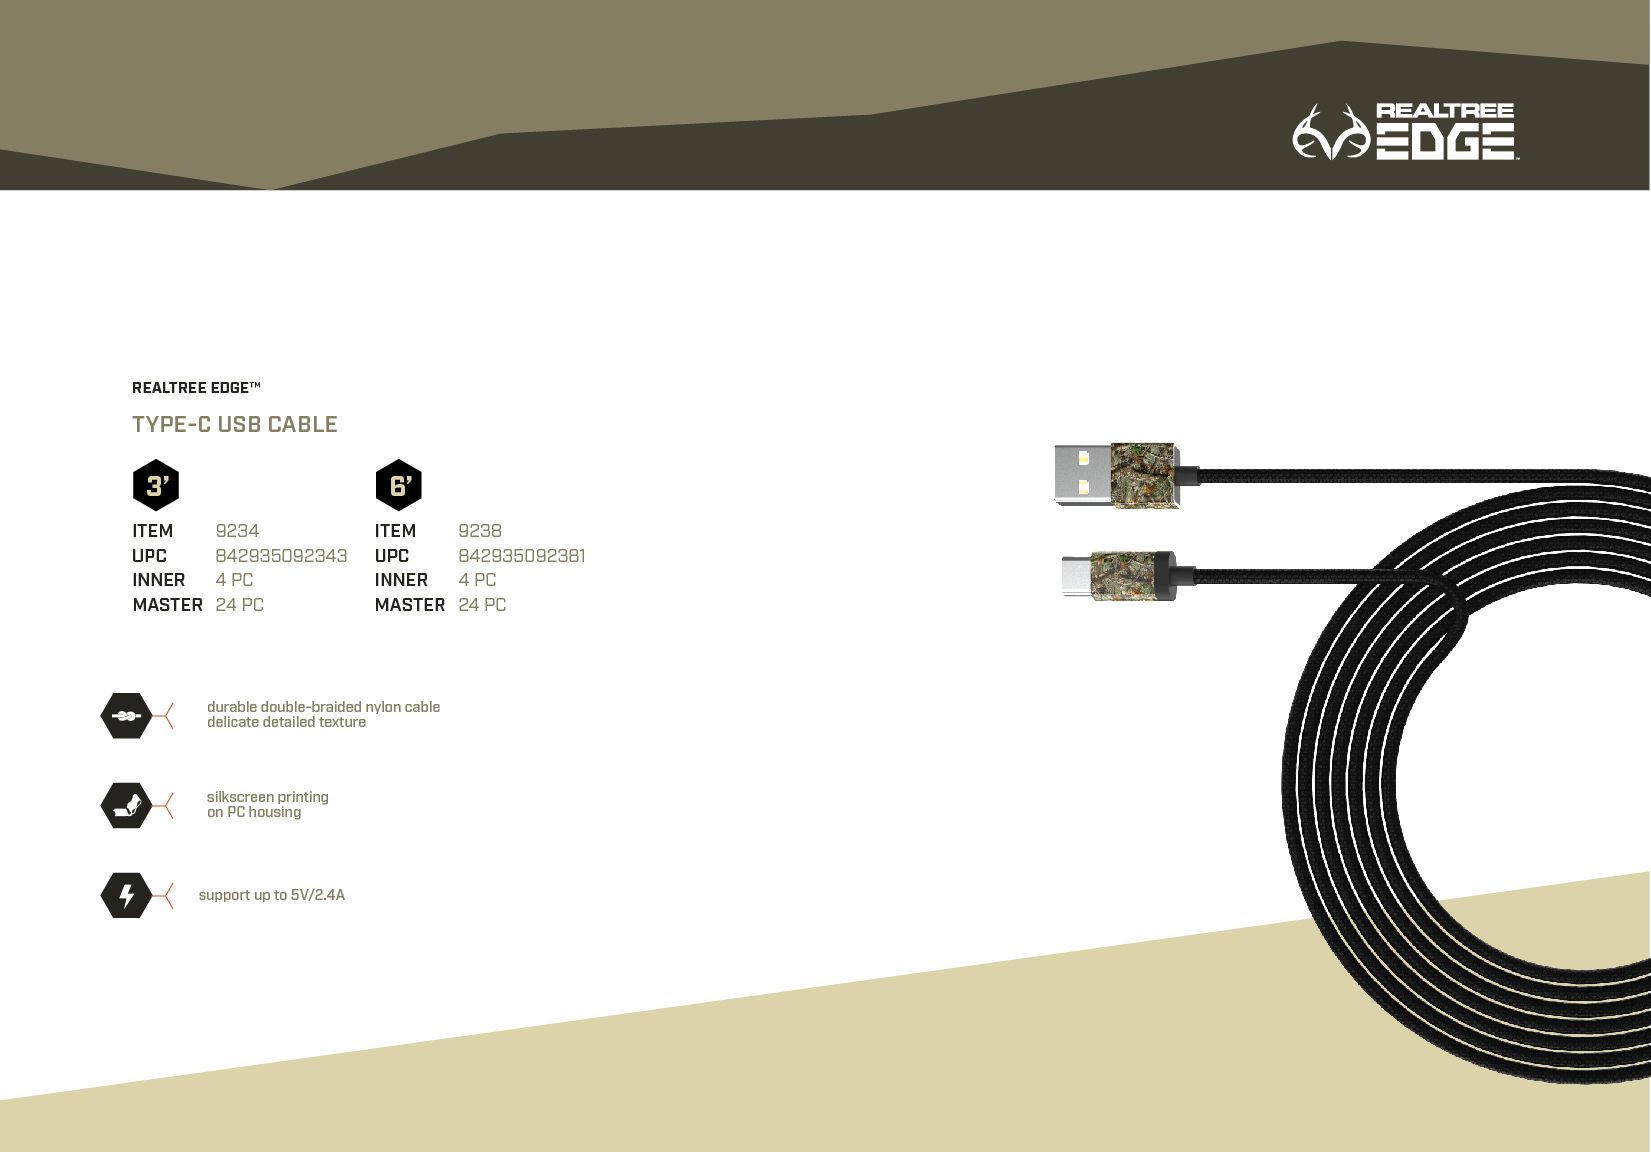 9234-9238_Type-C Cable_spec sheet_9234-9238_Type-C USB Cable copy.jpg